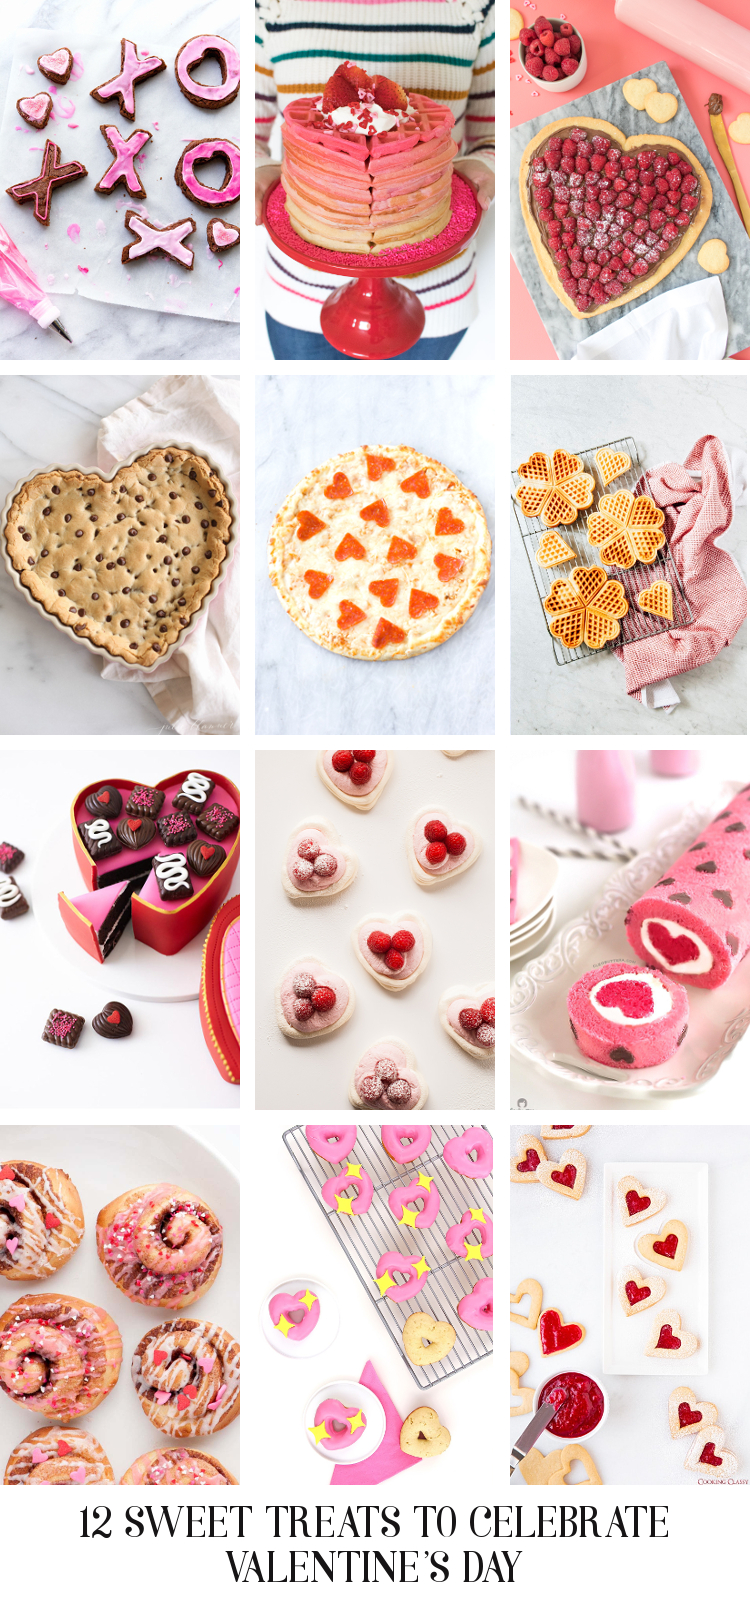 12 SWEET TREATS TO CELEBRATE VALENTINE'S DAY.